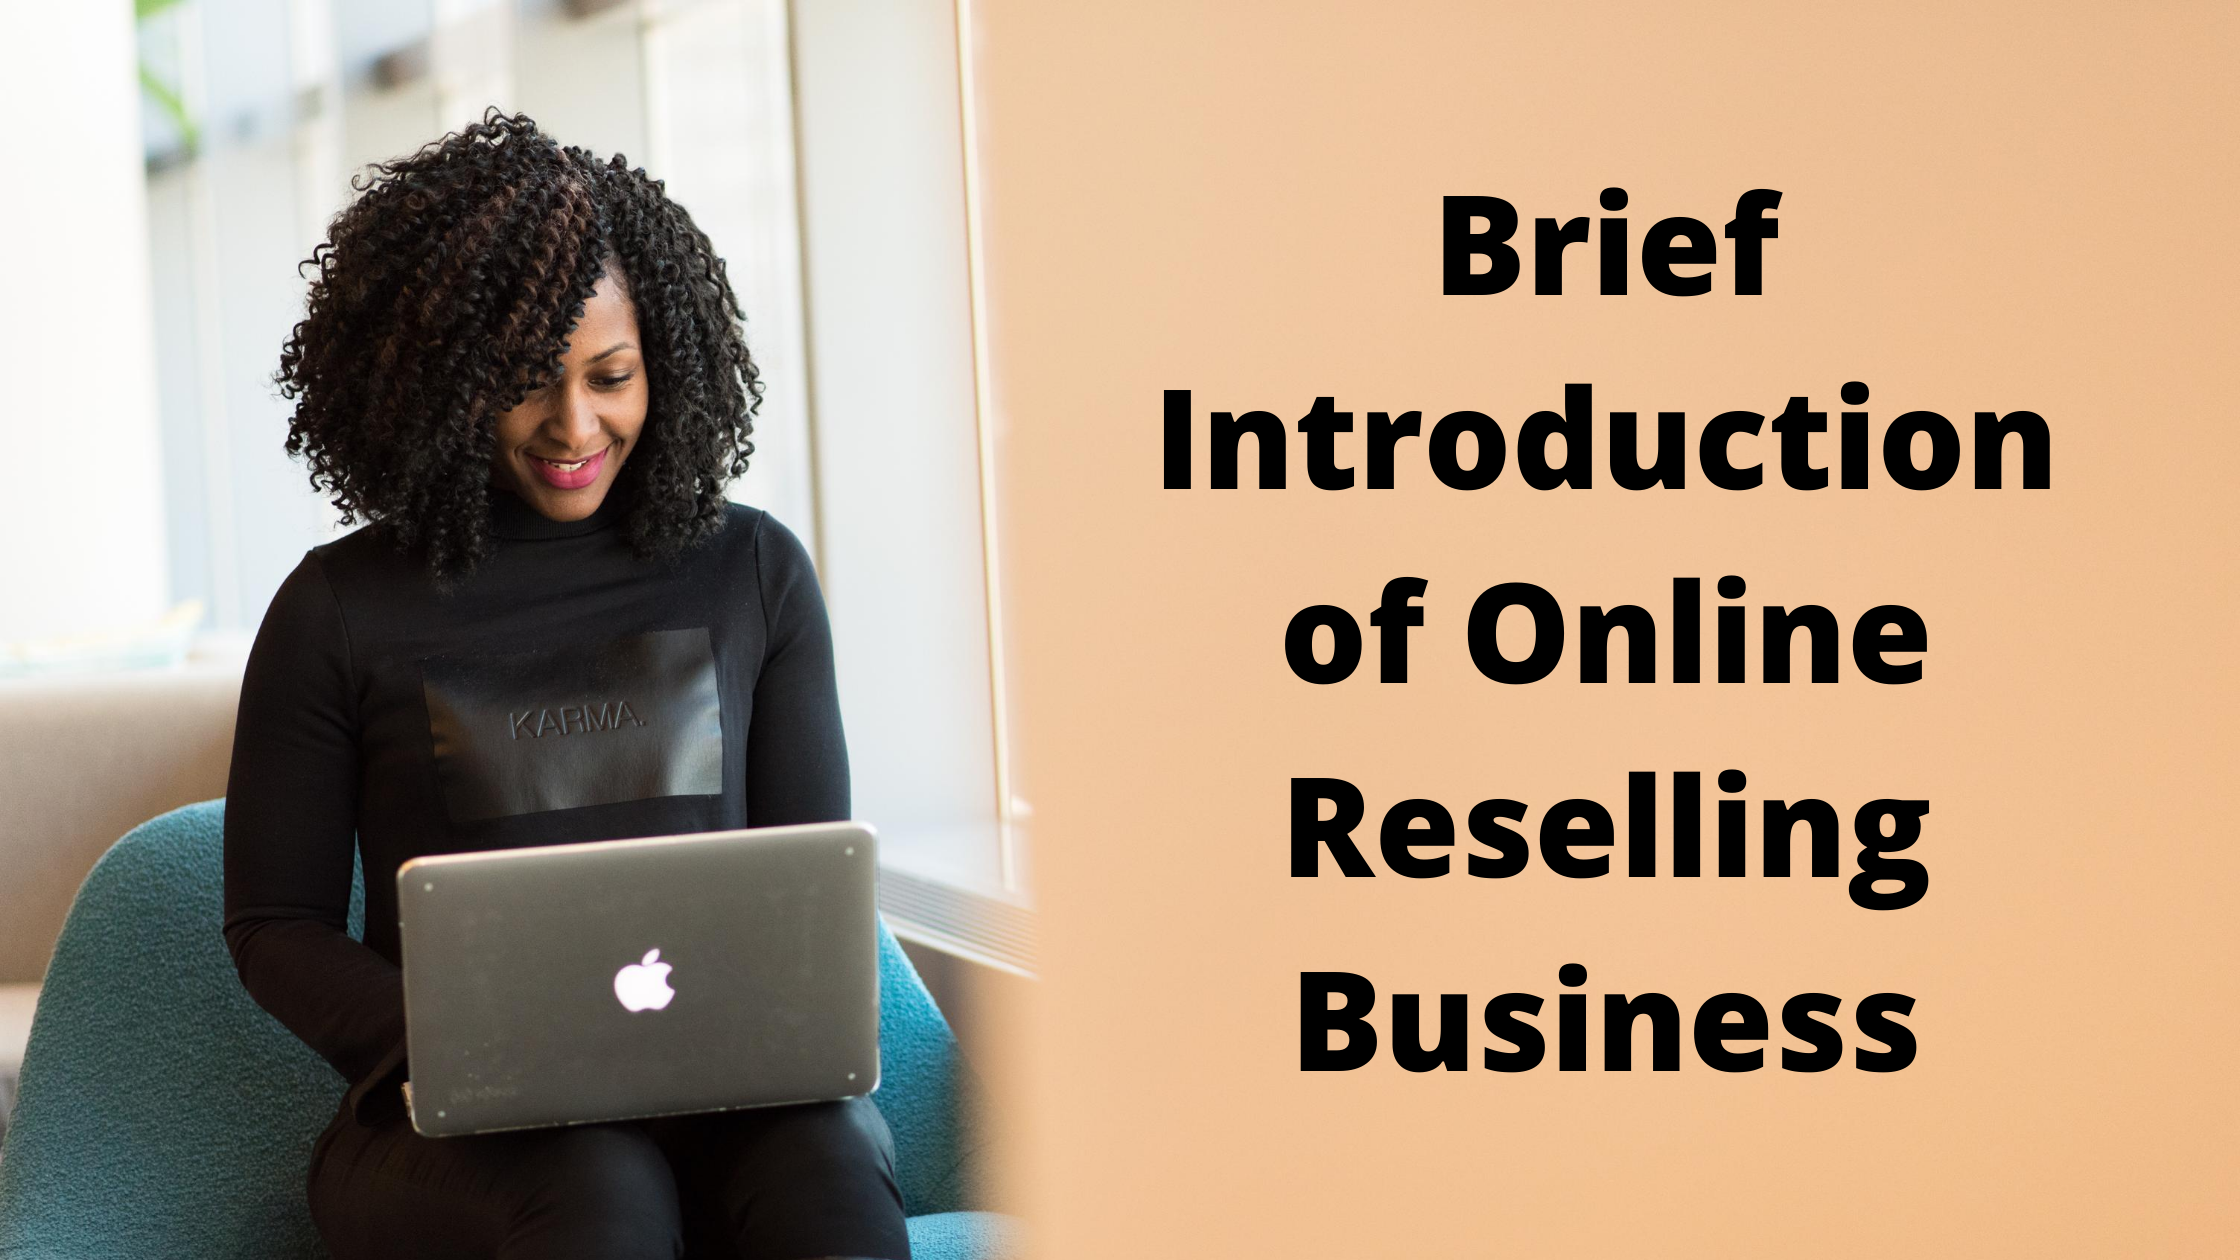 Brief Introduction of Online Reselling Business